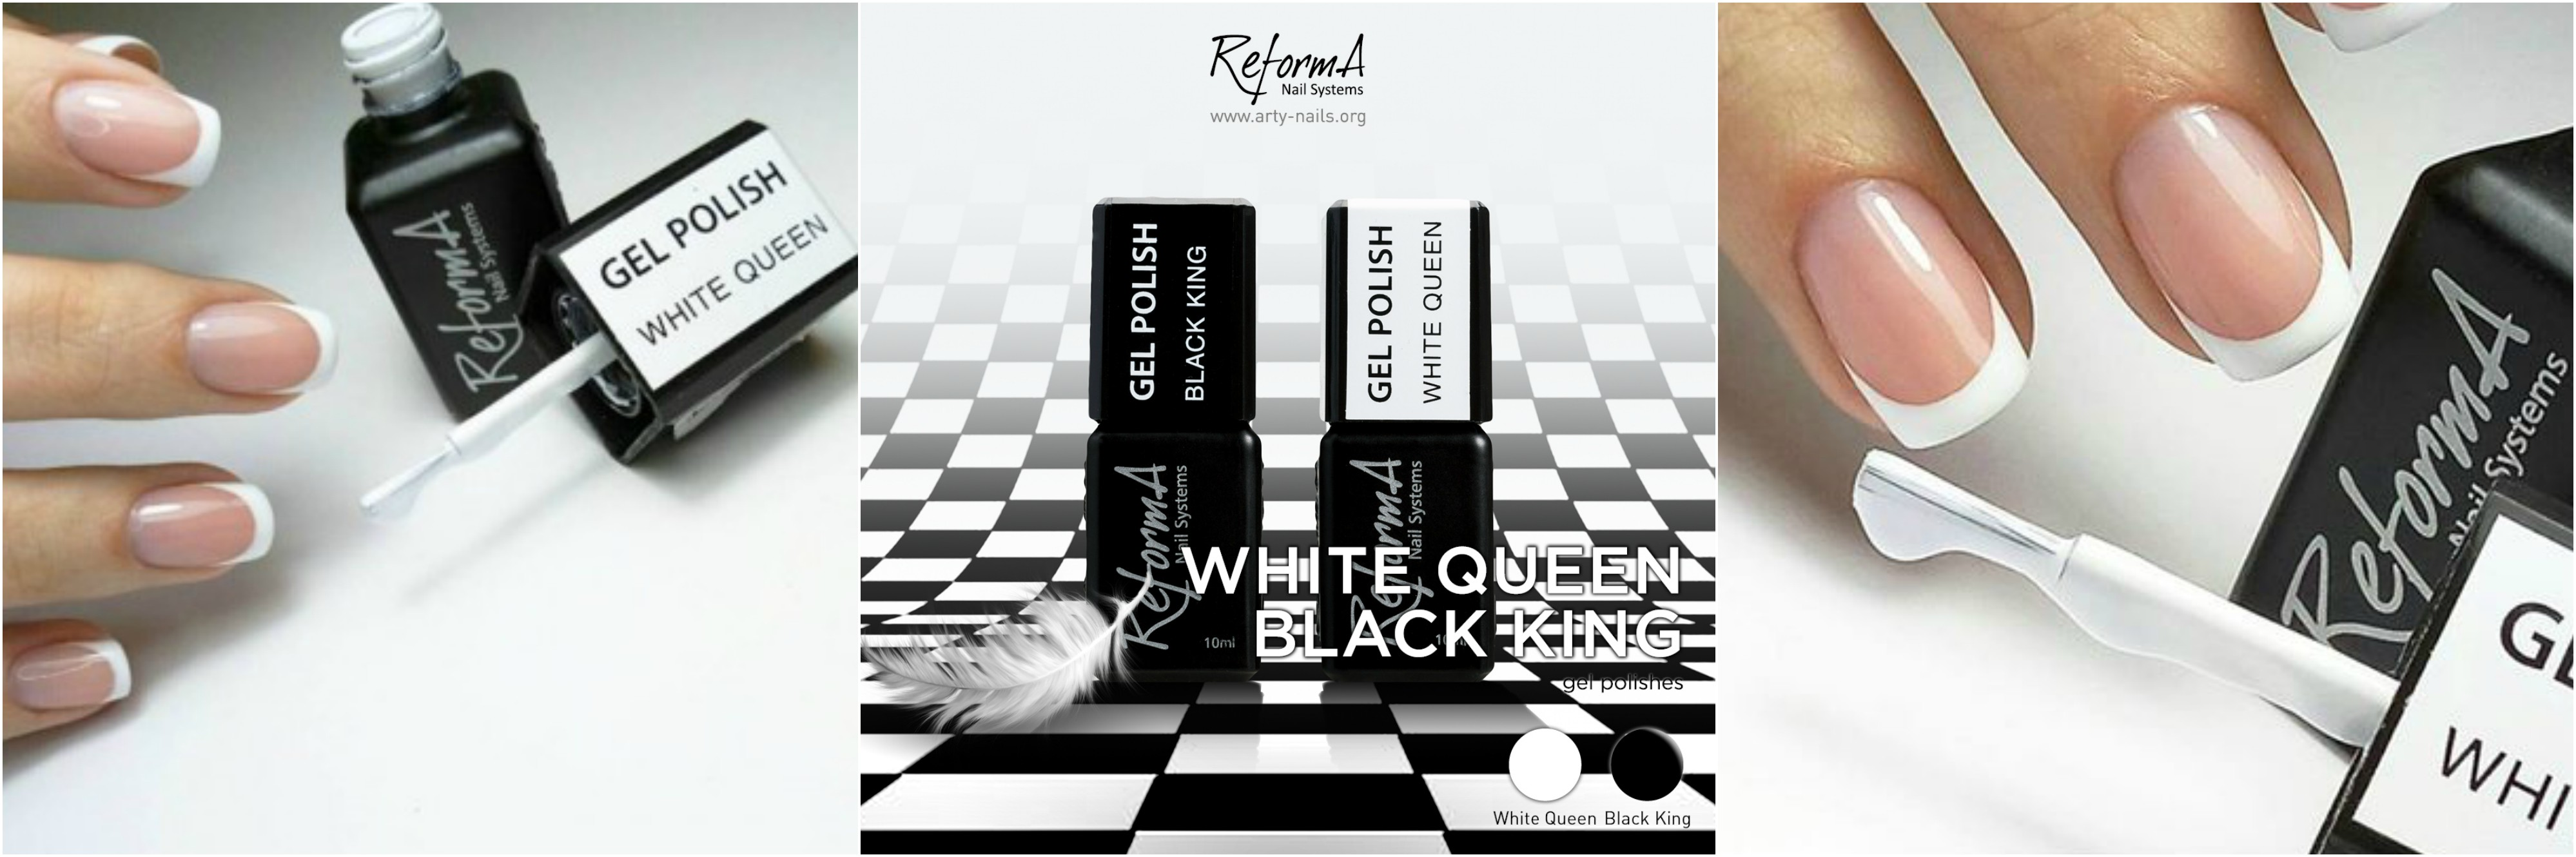 Reforma gel lak – White Queen in Black King